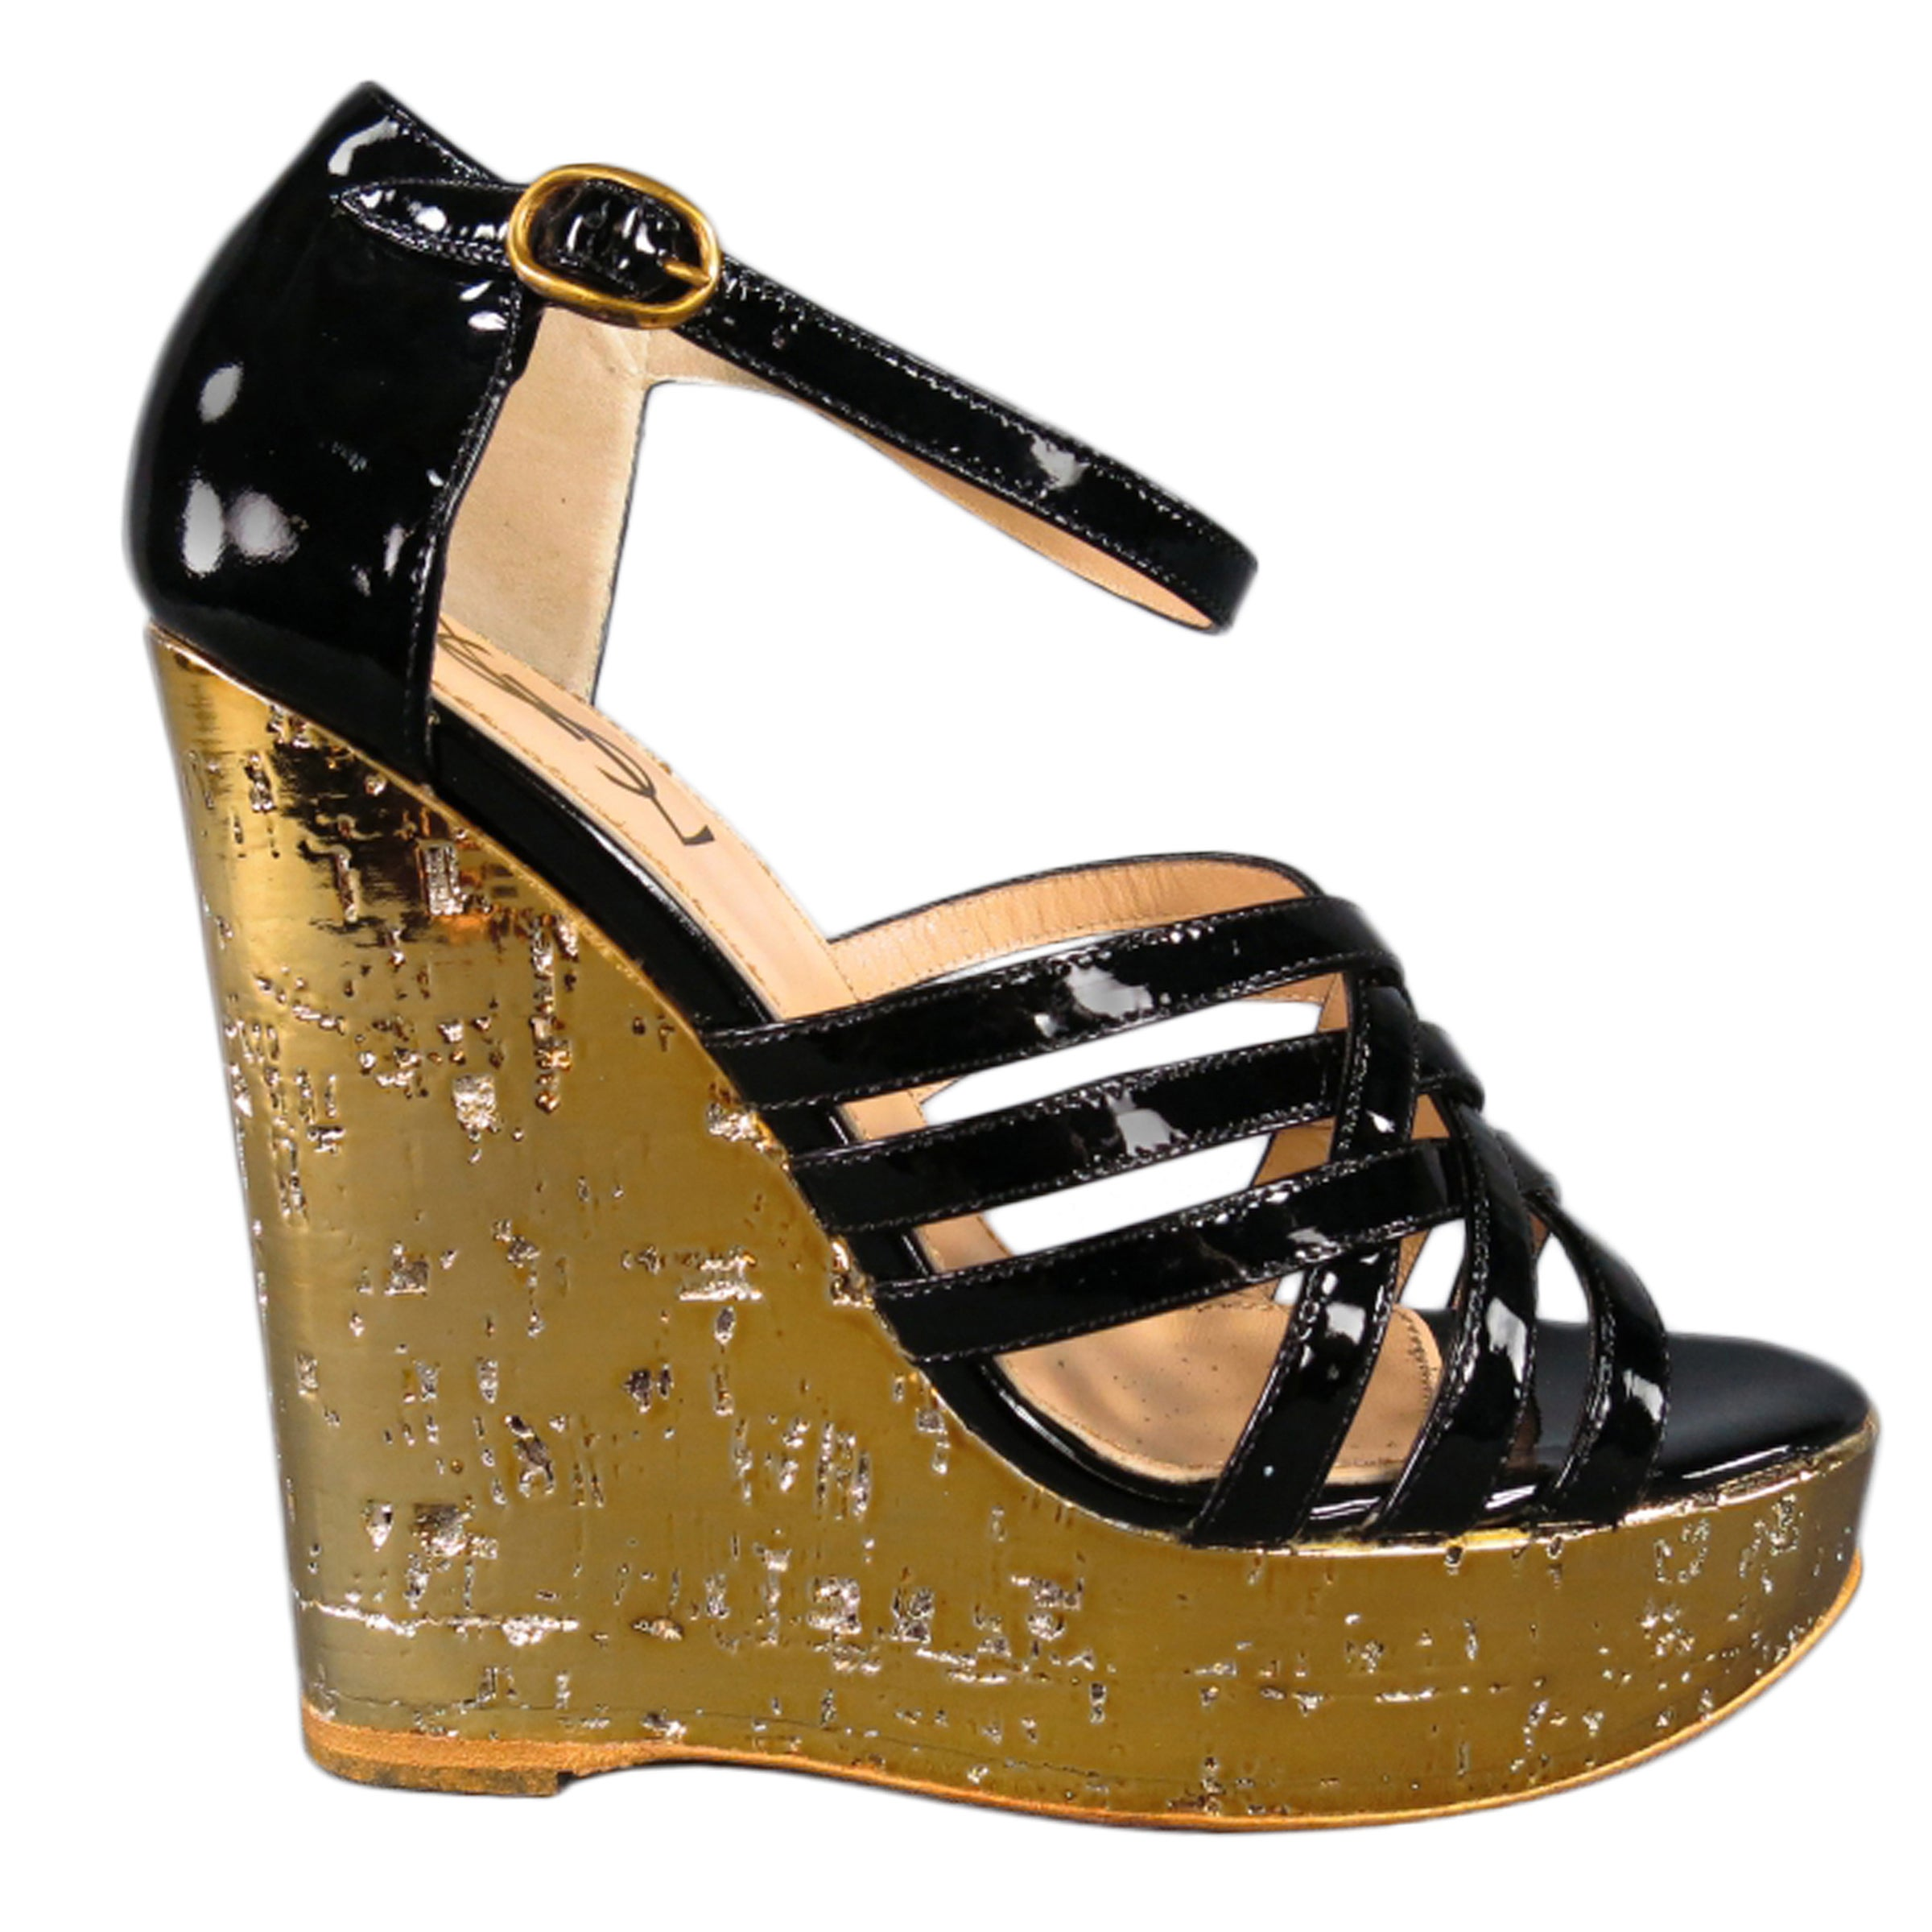 664840072c0 Yves Saint Laurent Black Patent Leather Woven Strap Gold IDOLE wedges at  1stdibs